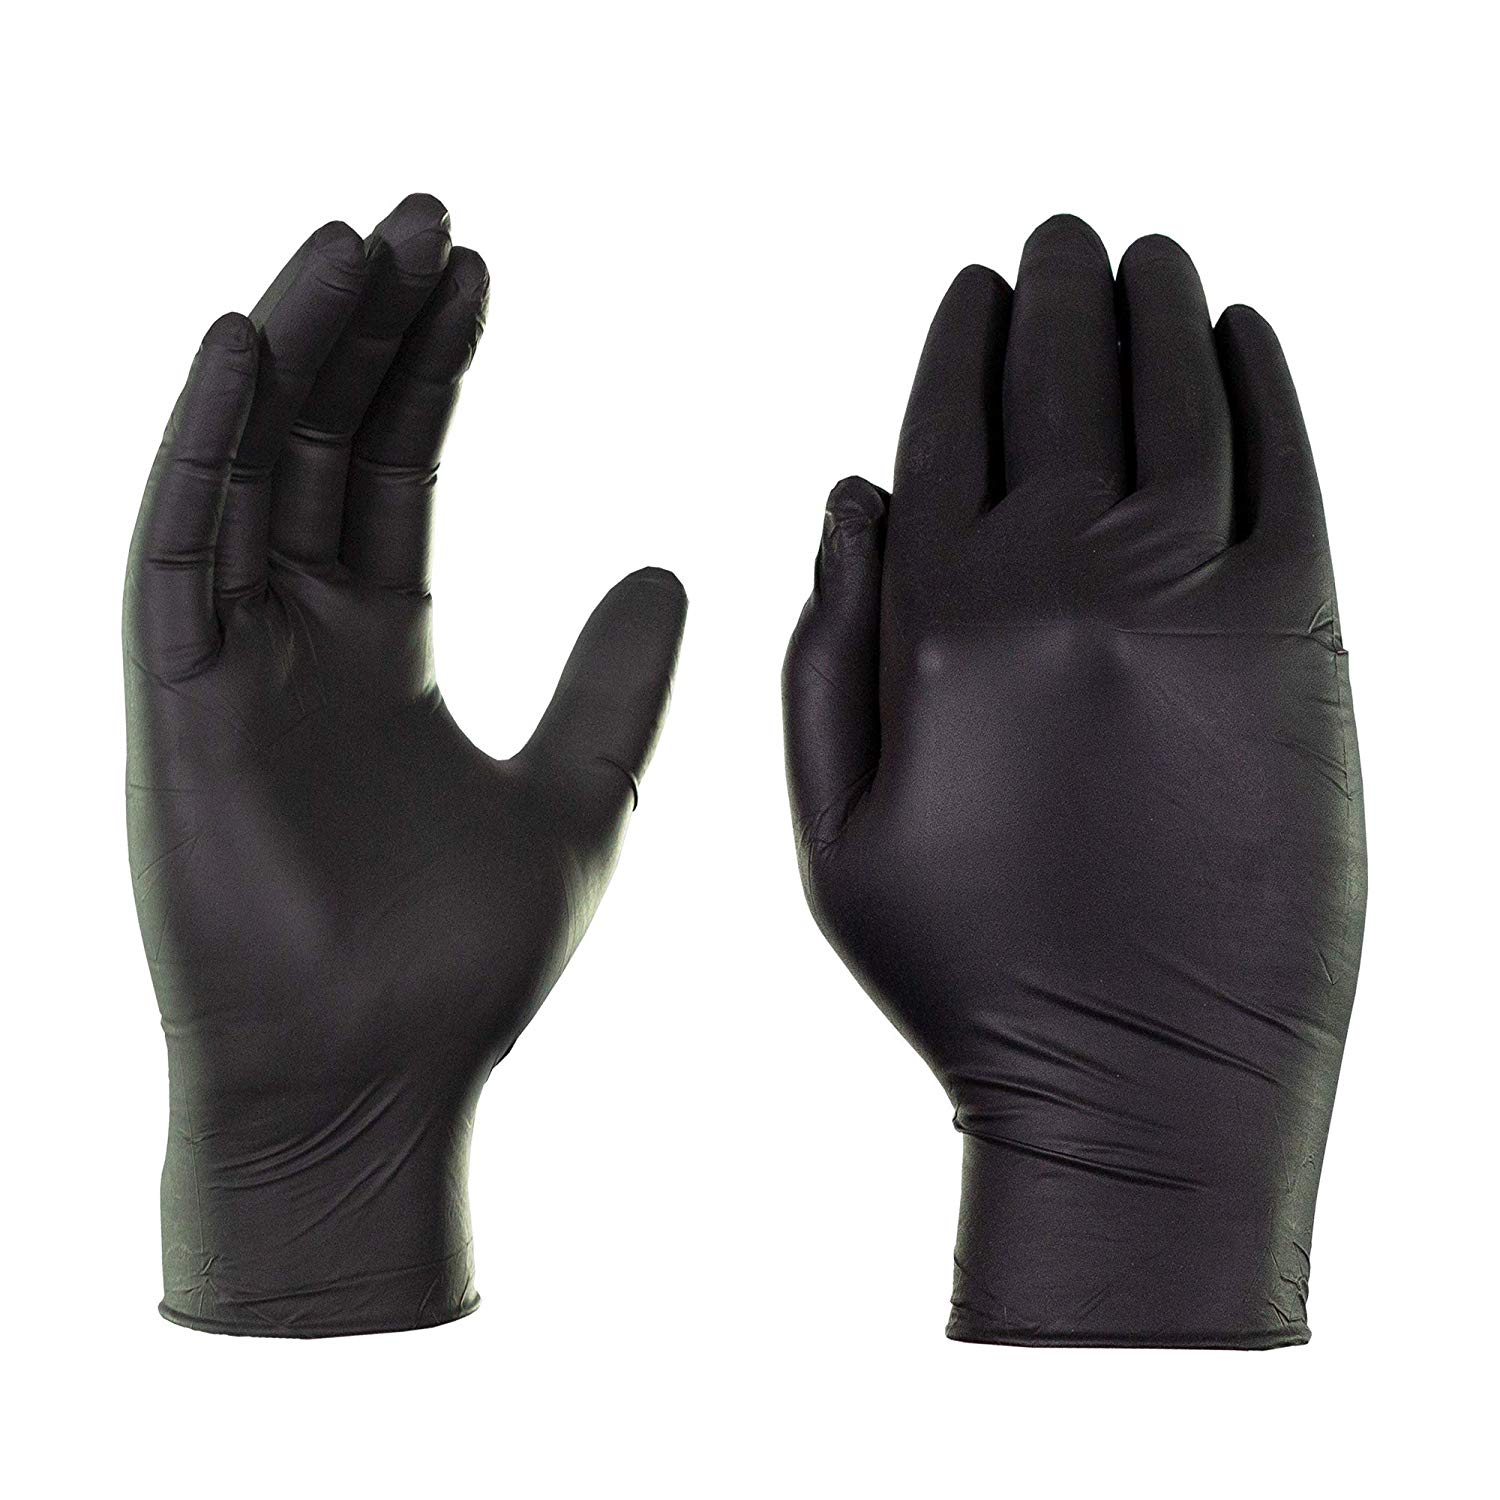 X3 Industrial Nitrile Gloves 13